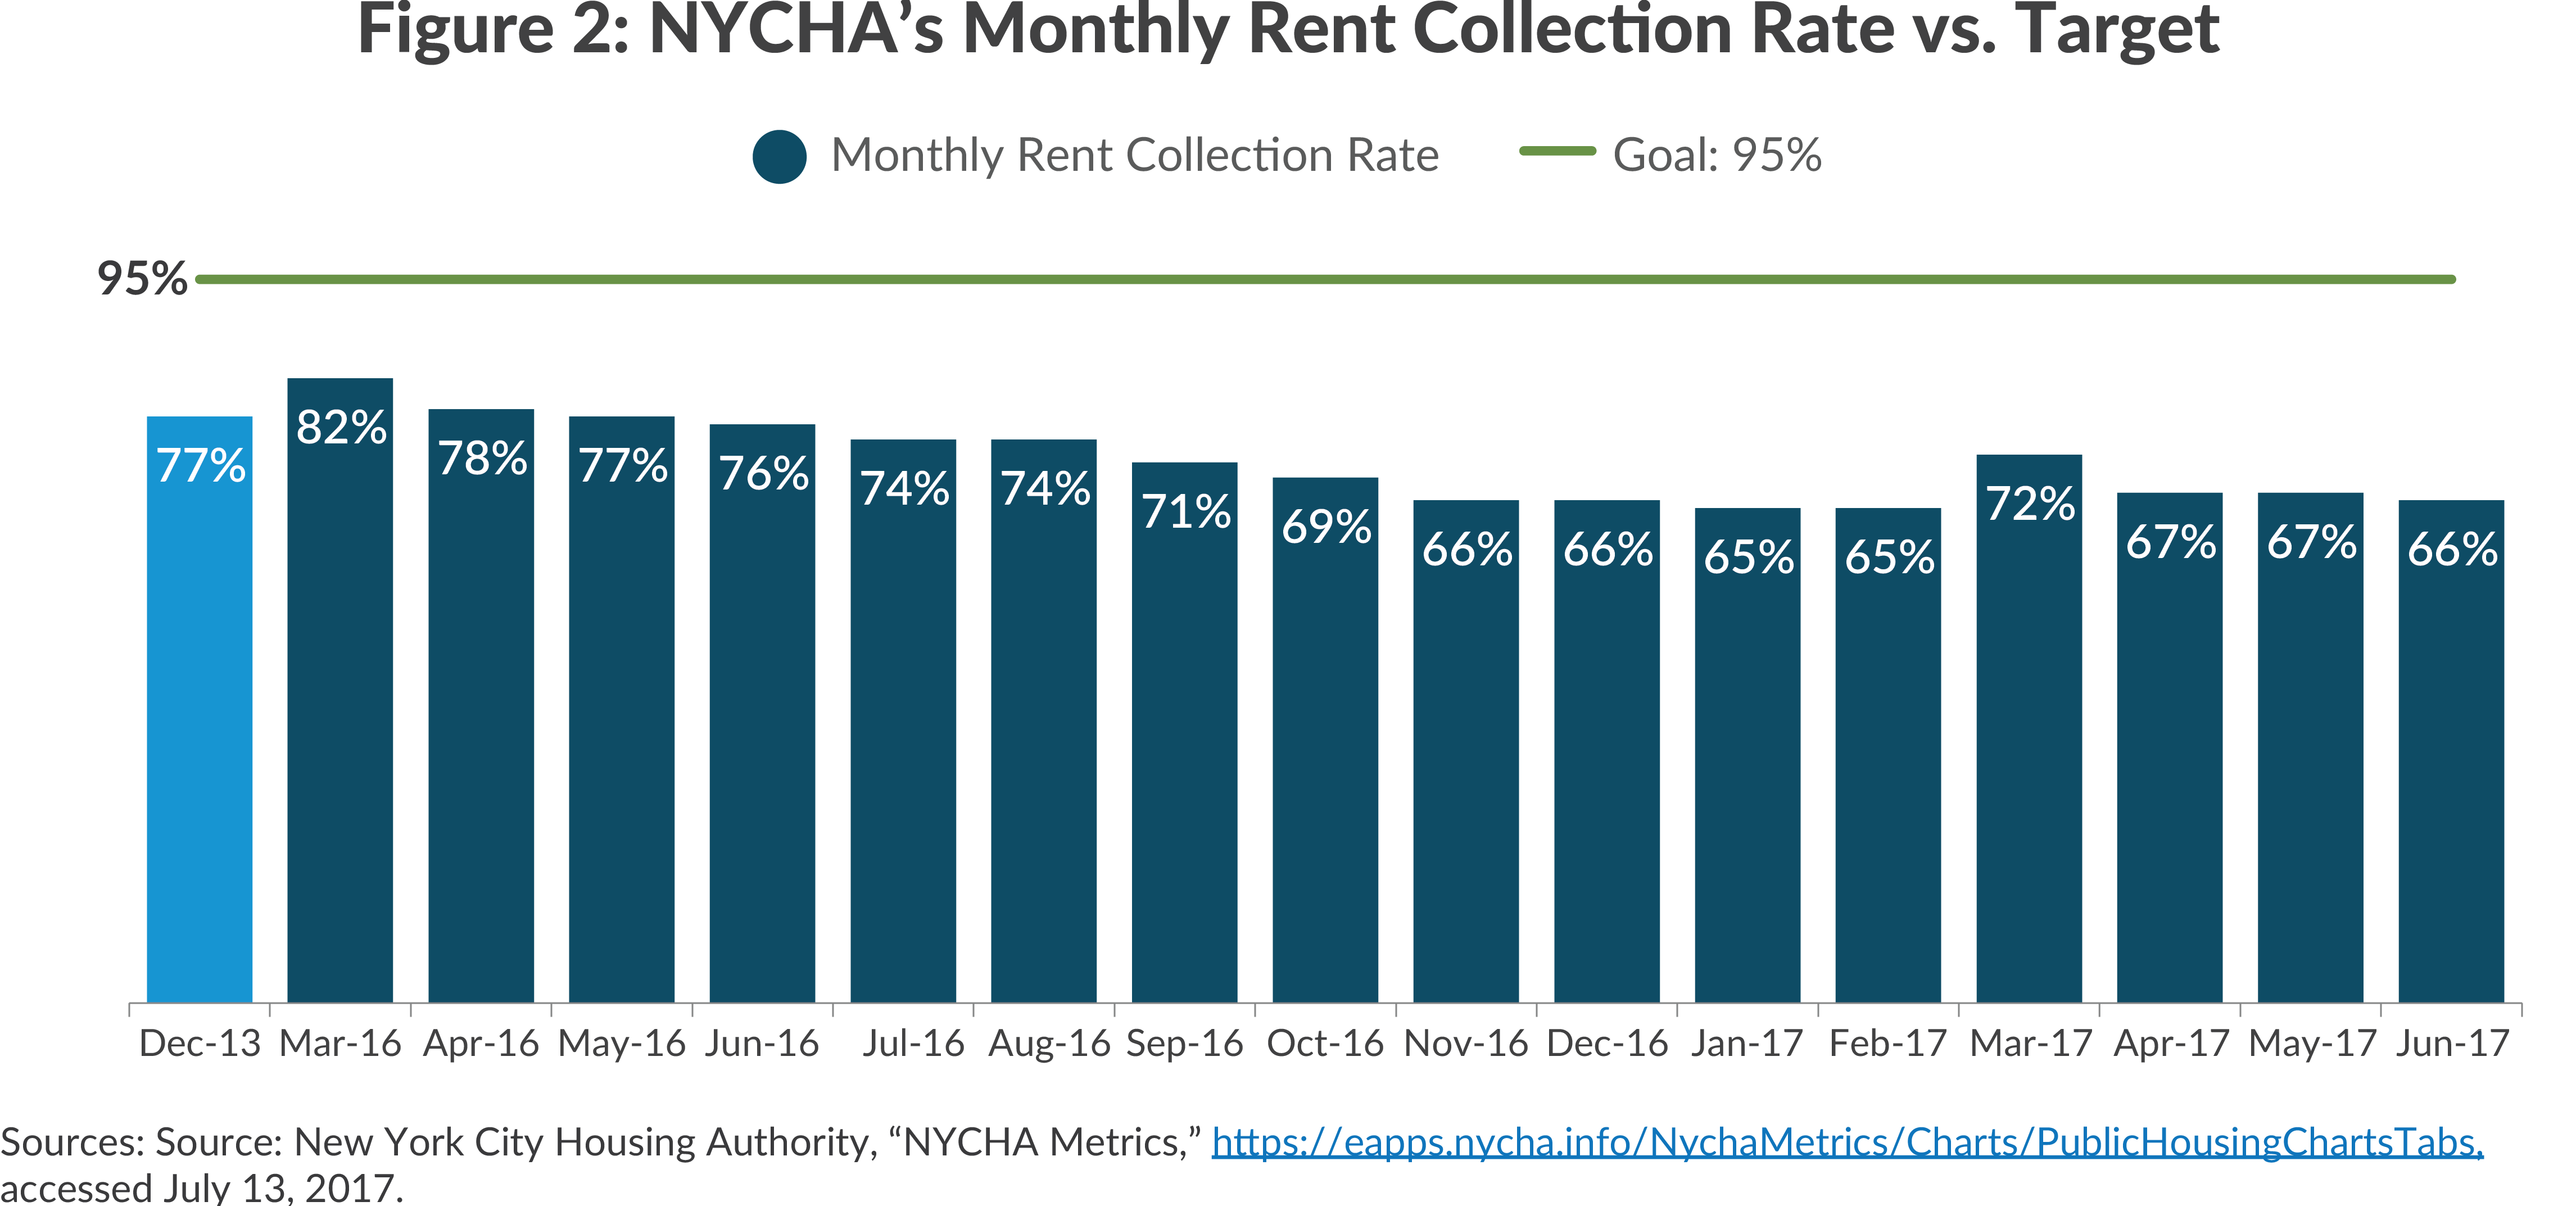 Figure 2: NYCHA's Monthly Rent Collection Rate vs. Target